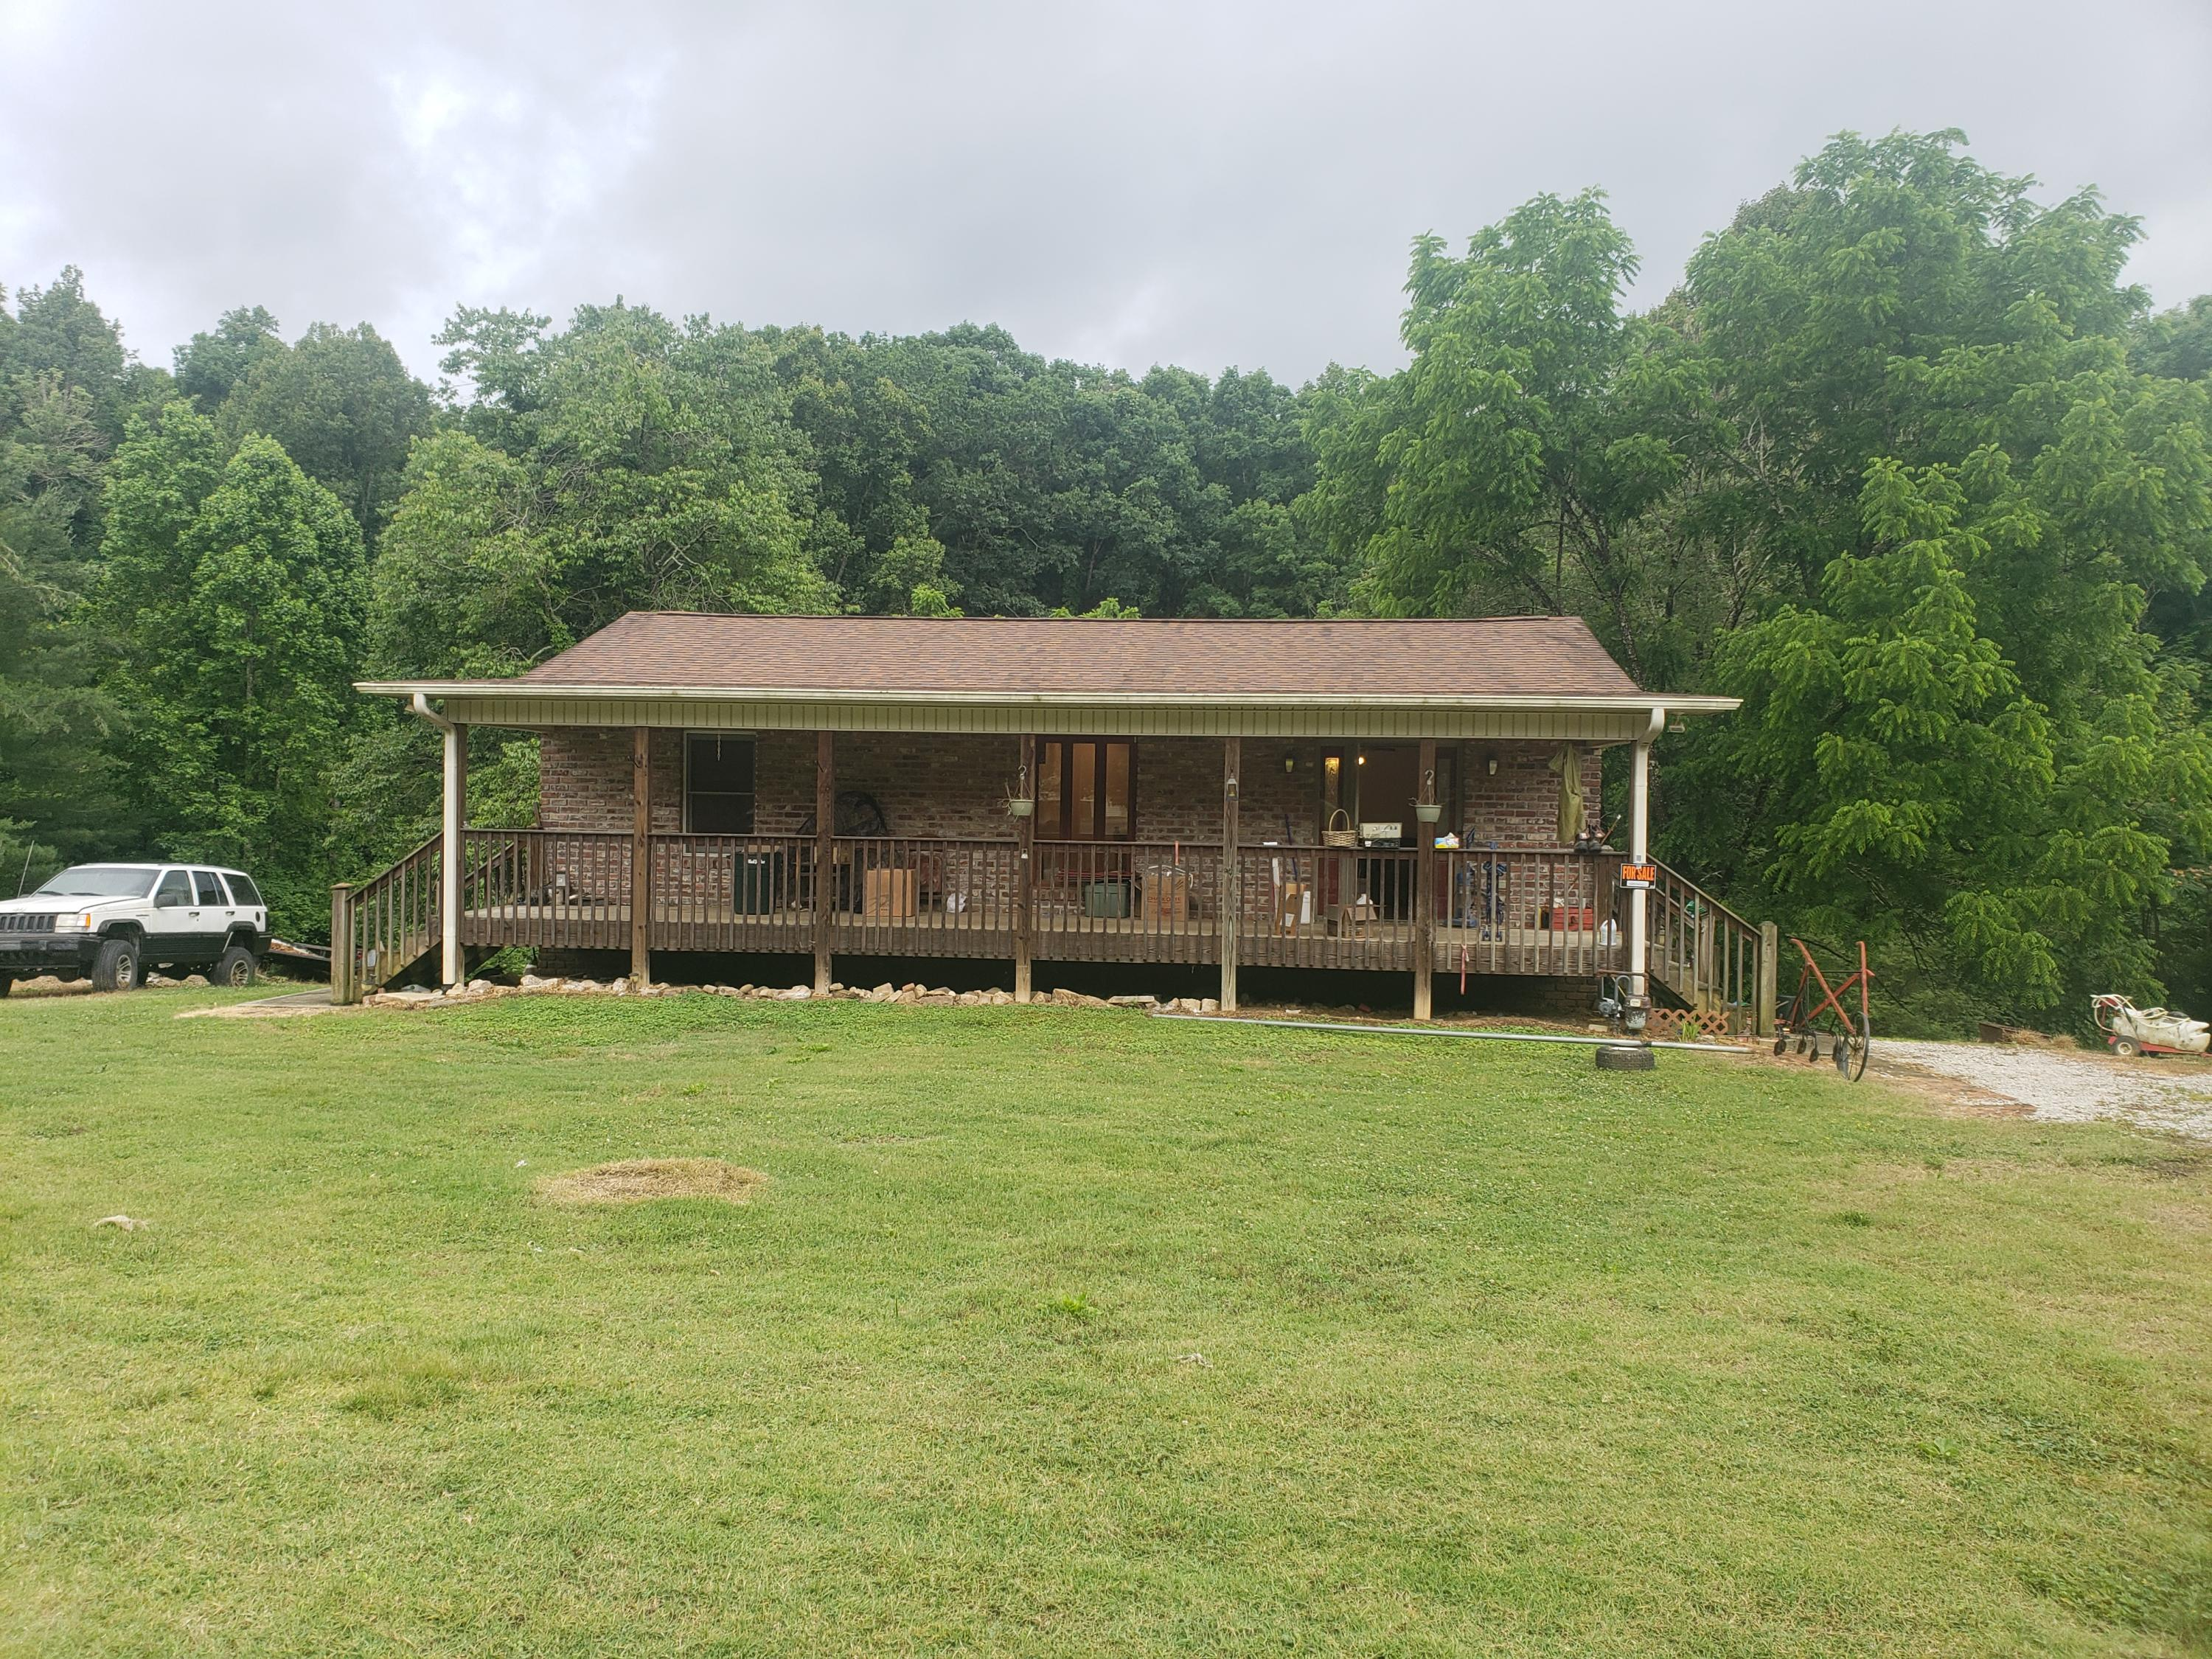 20190607204957877891000000-o Clinton anderson county homes for sale